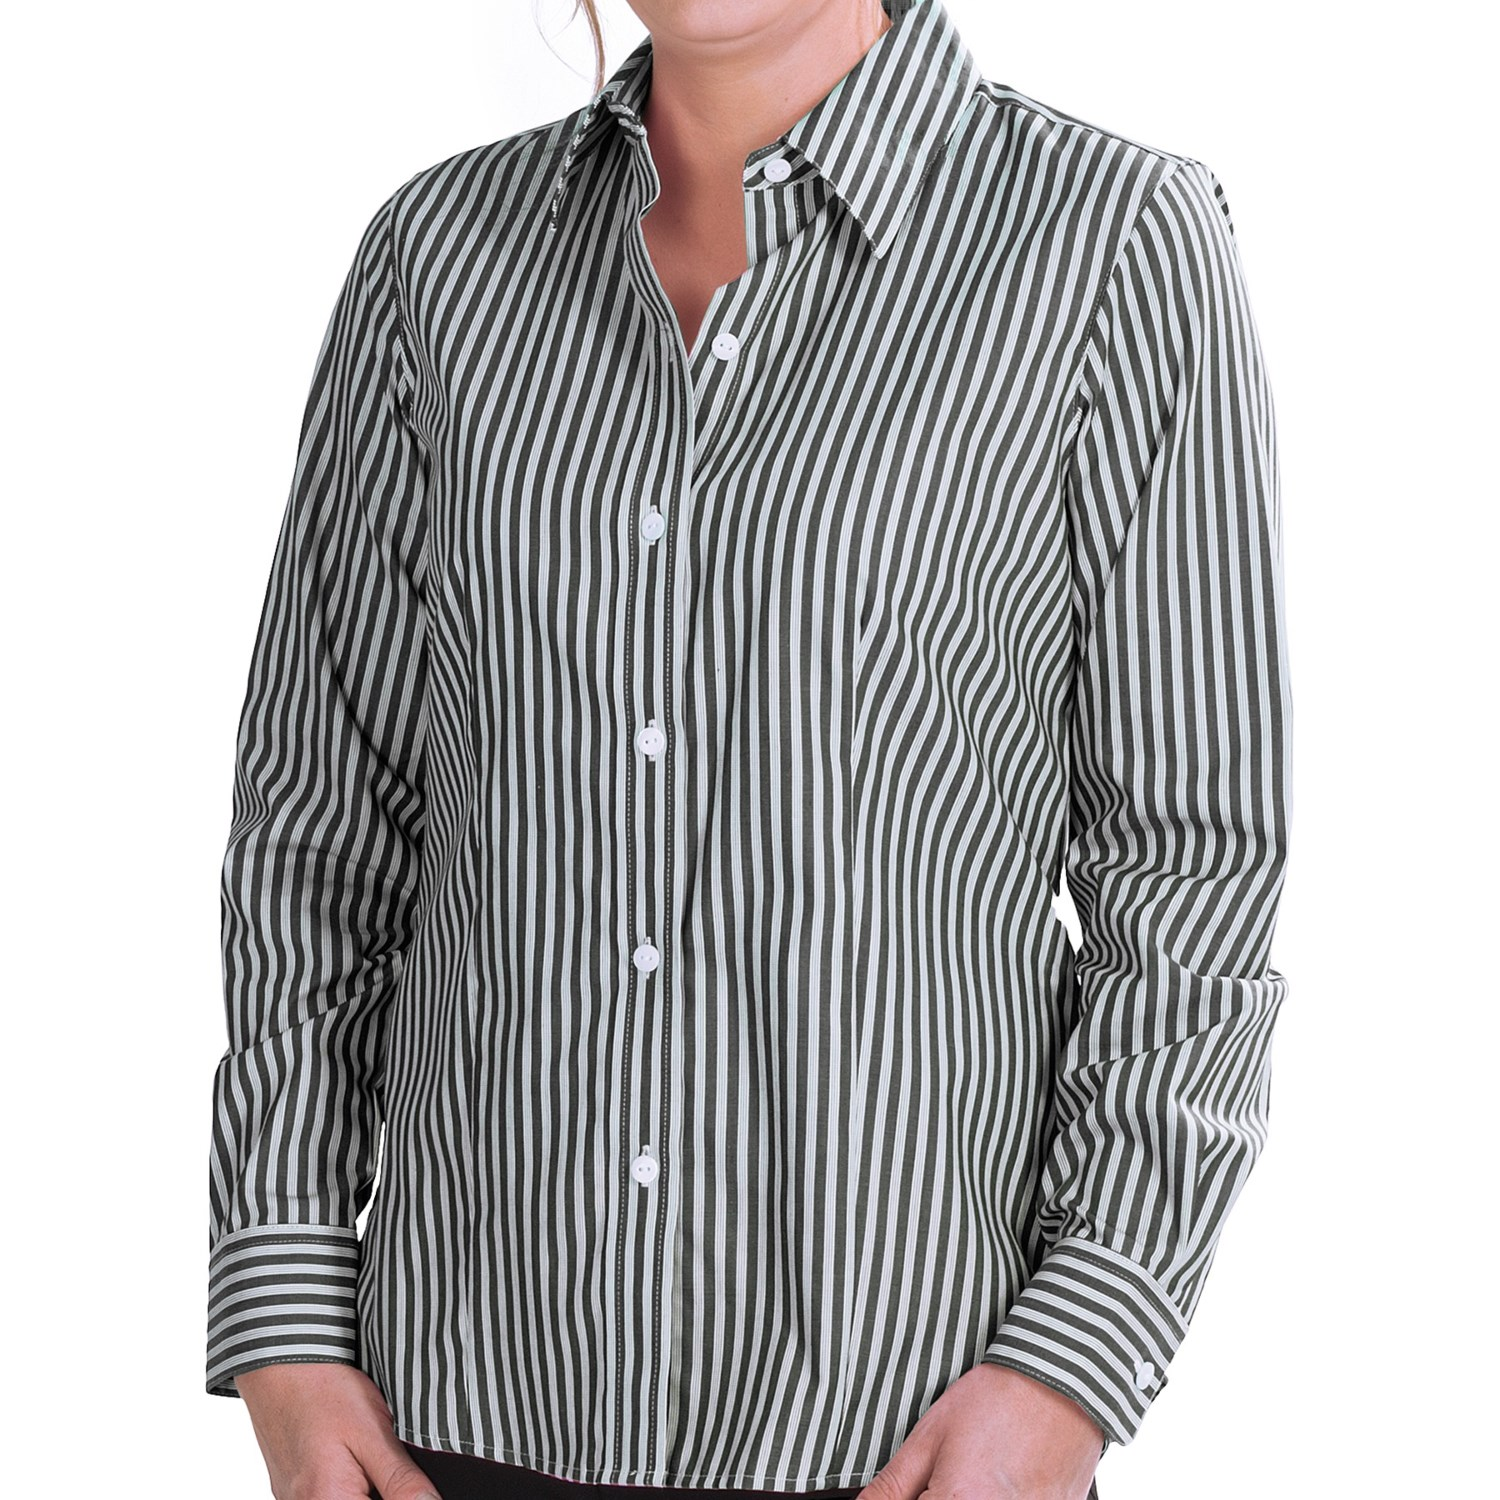 Foxcroft twill stripe shirt for women 7028u save 69 Wrinkle free shirts for women